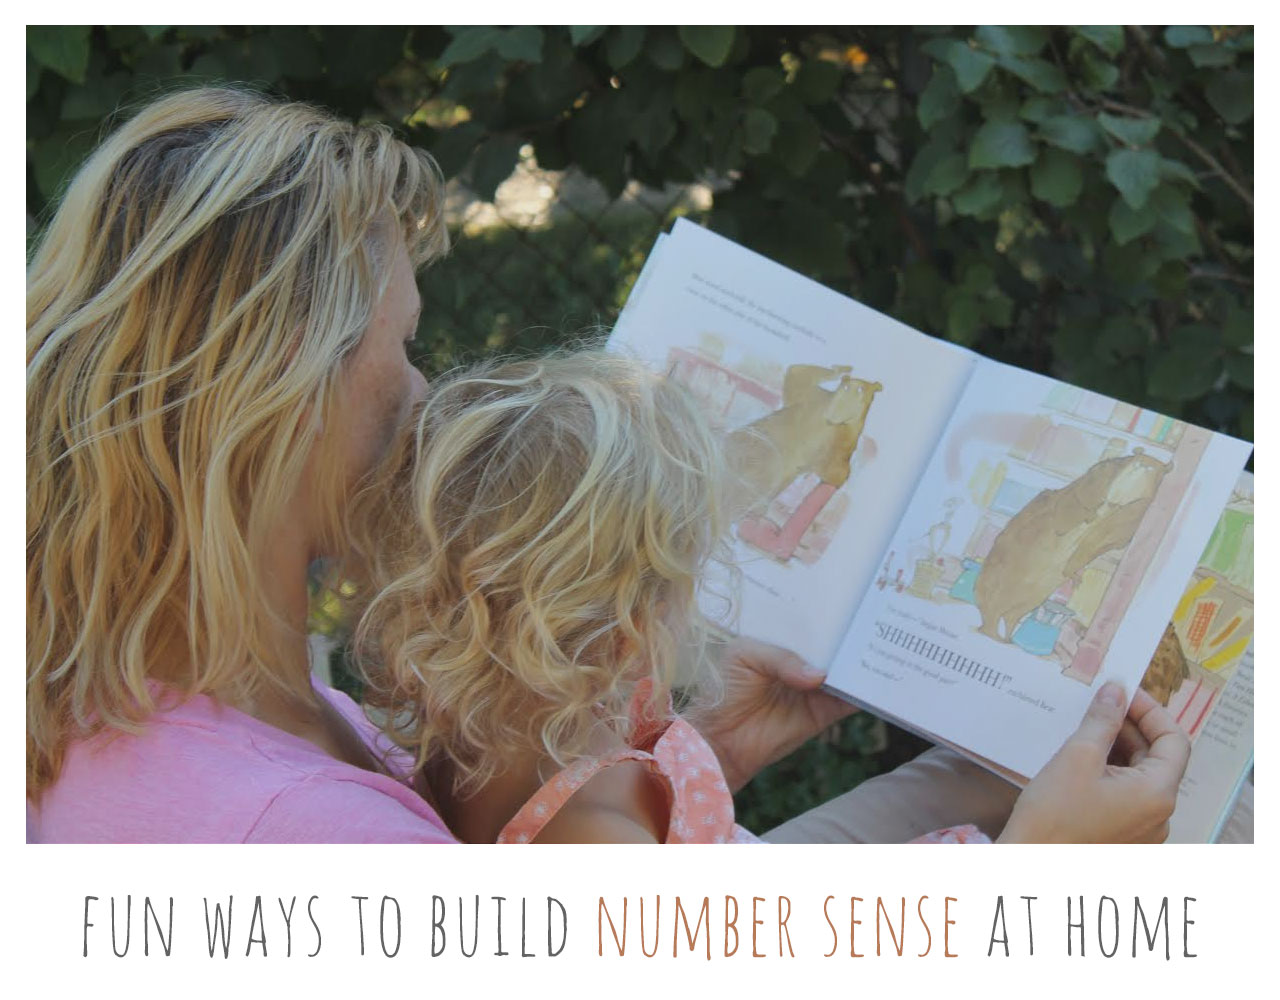 Fun Ways to Build Number Sense at Home